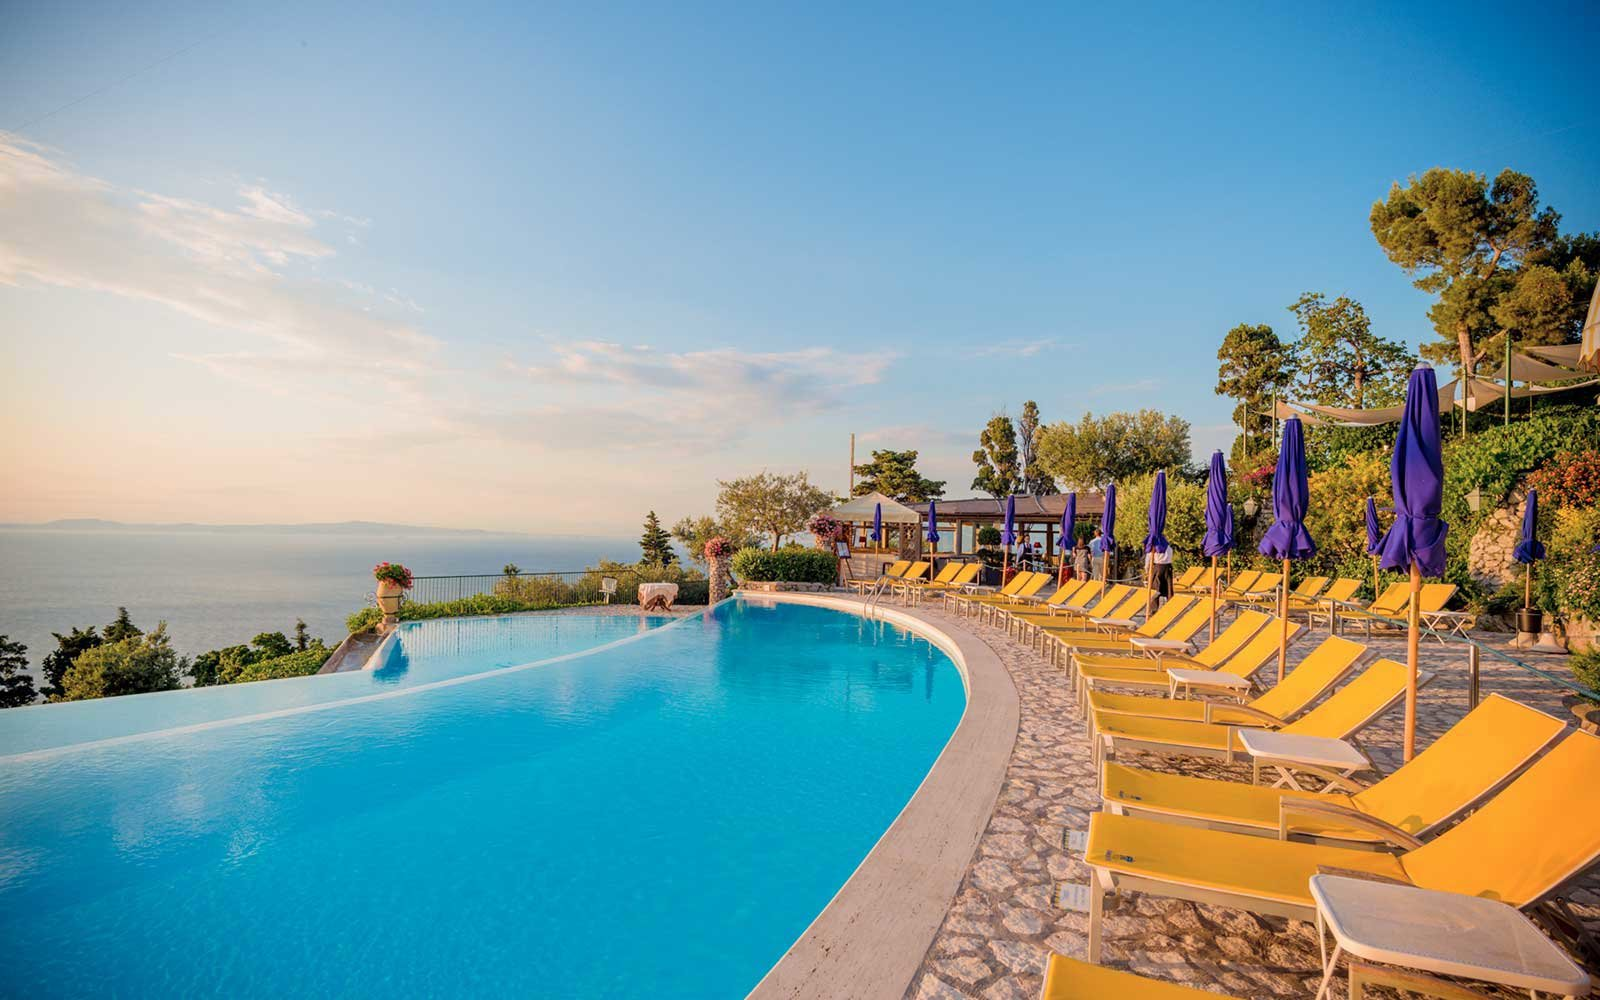 Hotel Caesar Augustus Resort in Europe